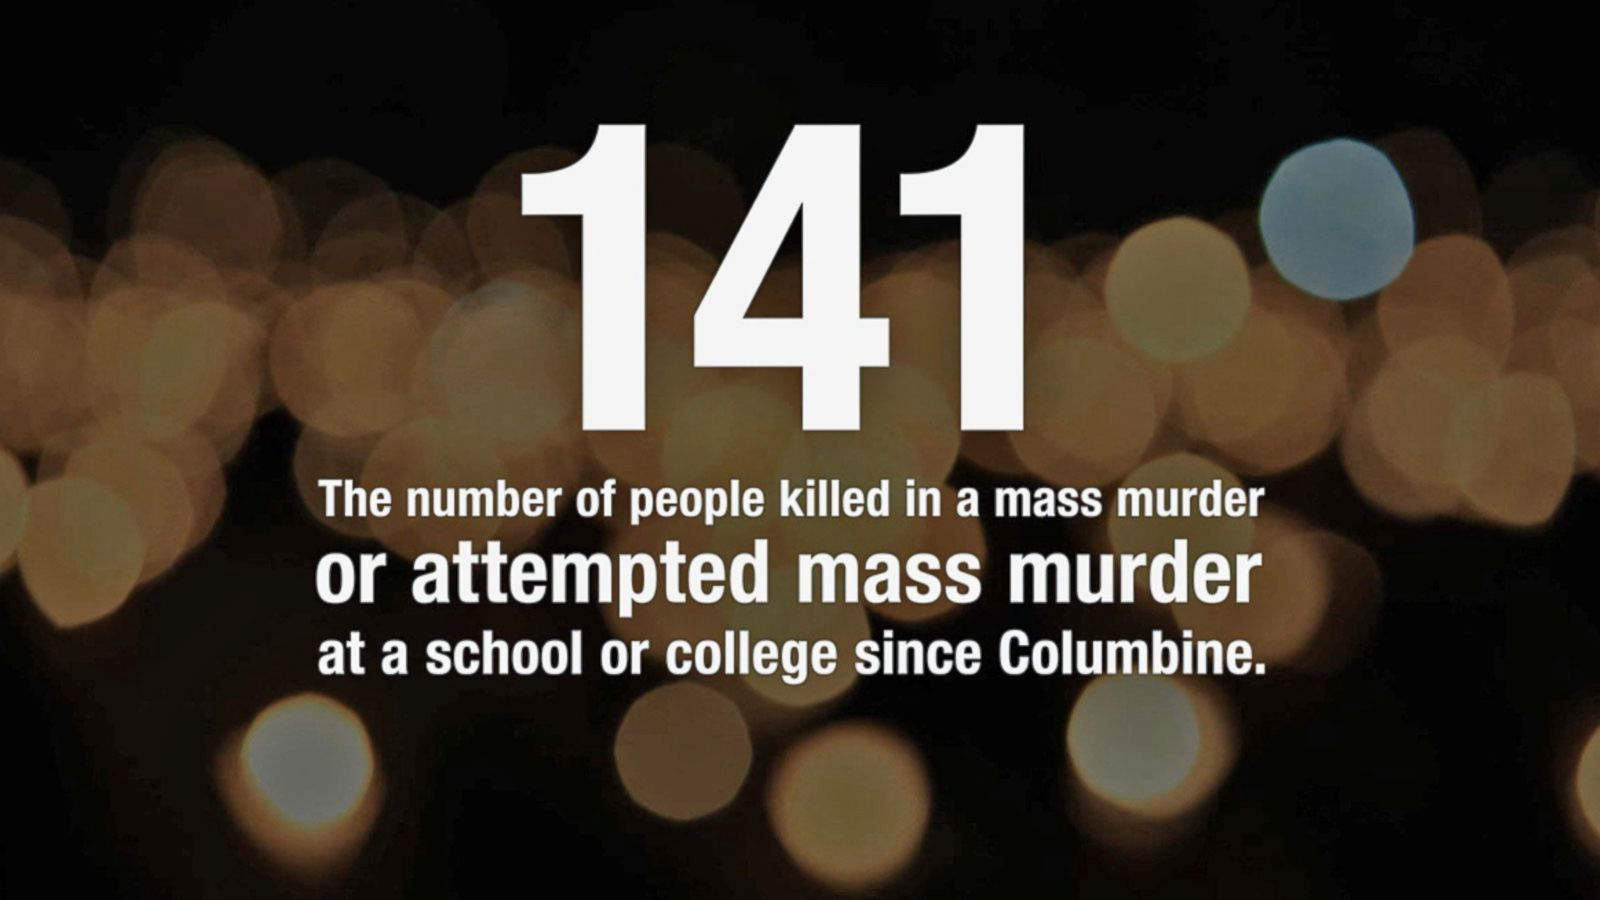 School Shootings Since Columbine: By the Numbers